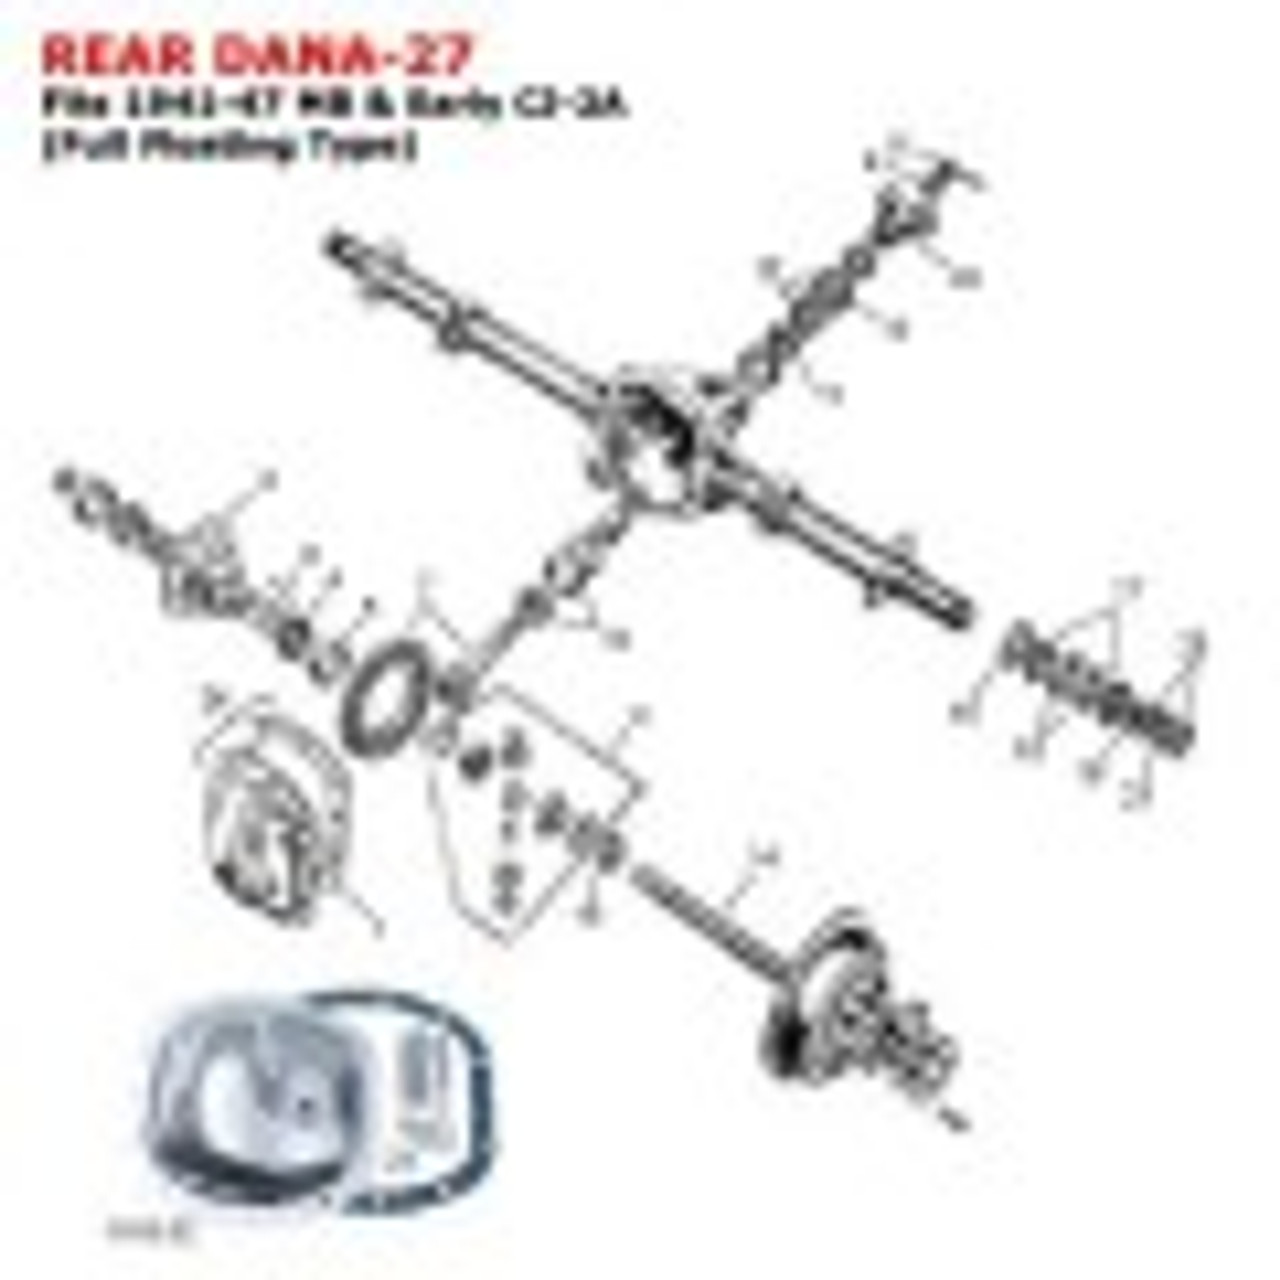 Rear Axle Replacement Parts